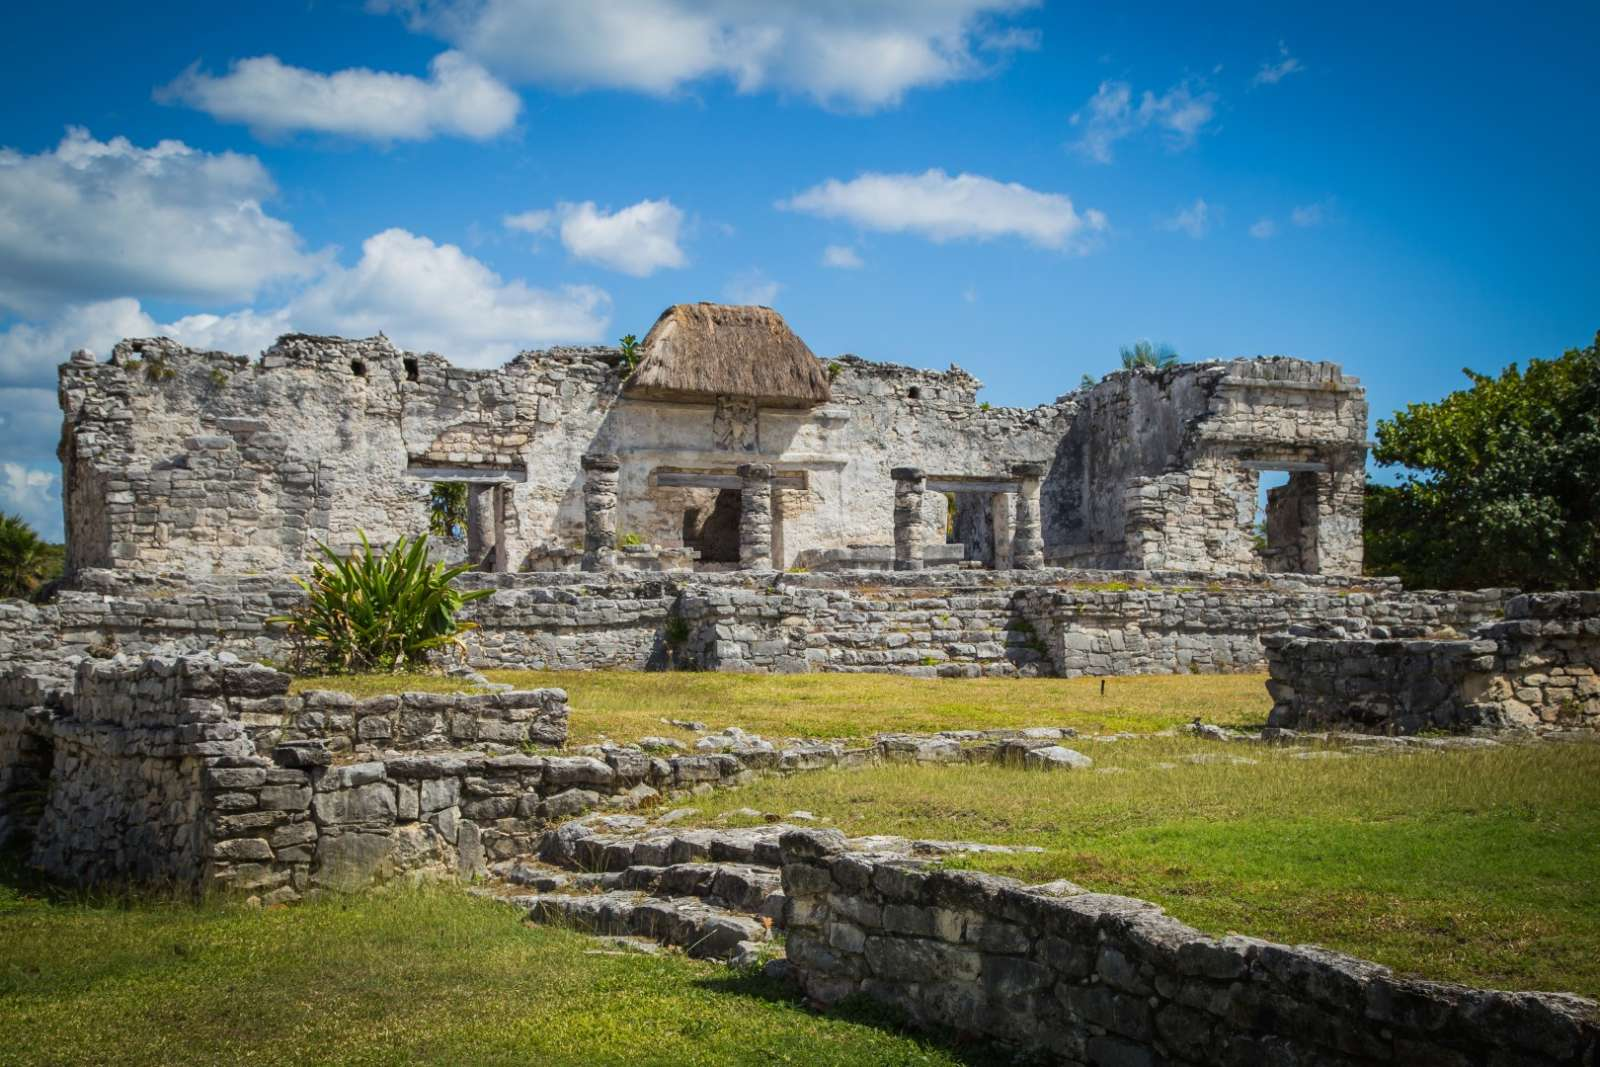 Mayan site at Tulum Mexico